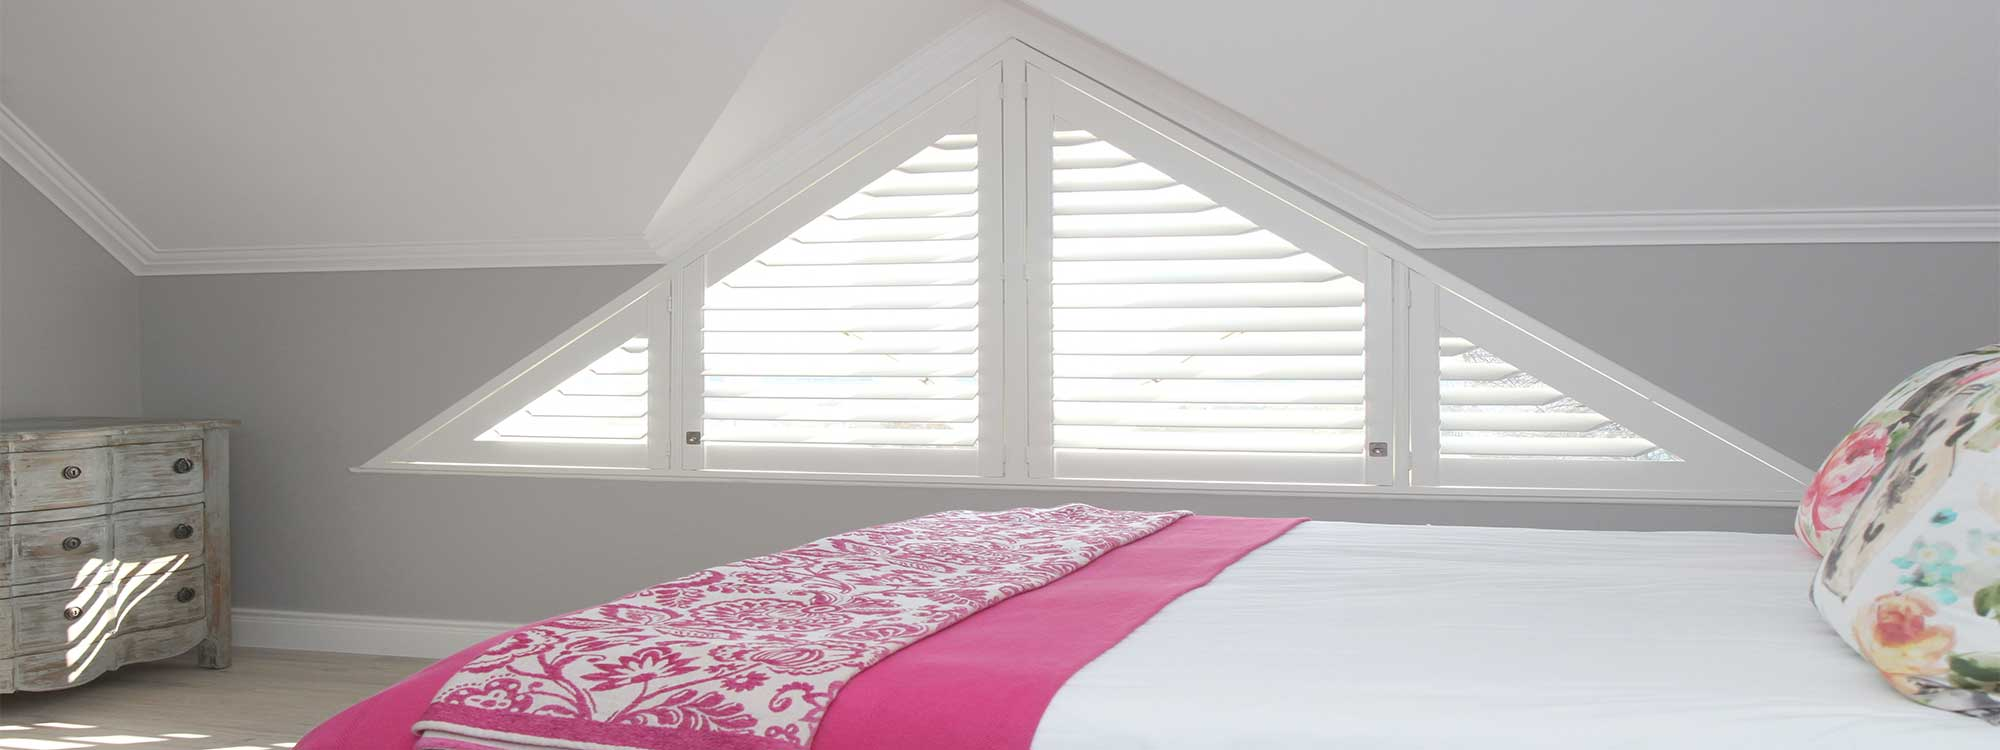 10 Reasons to Love Shutters